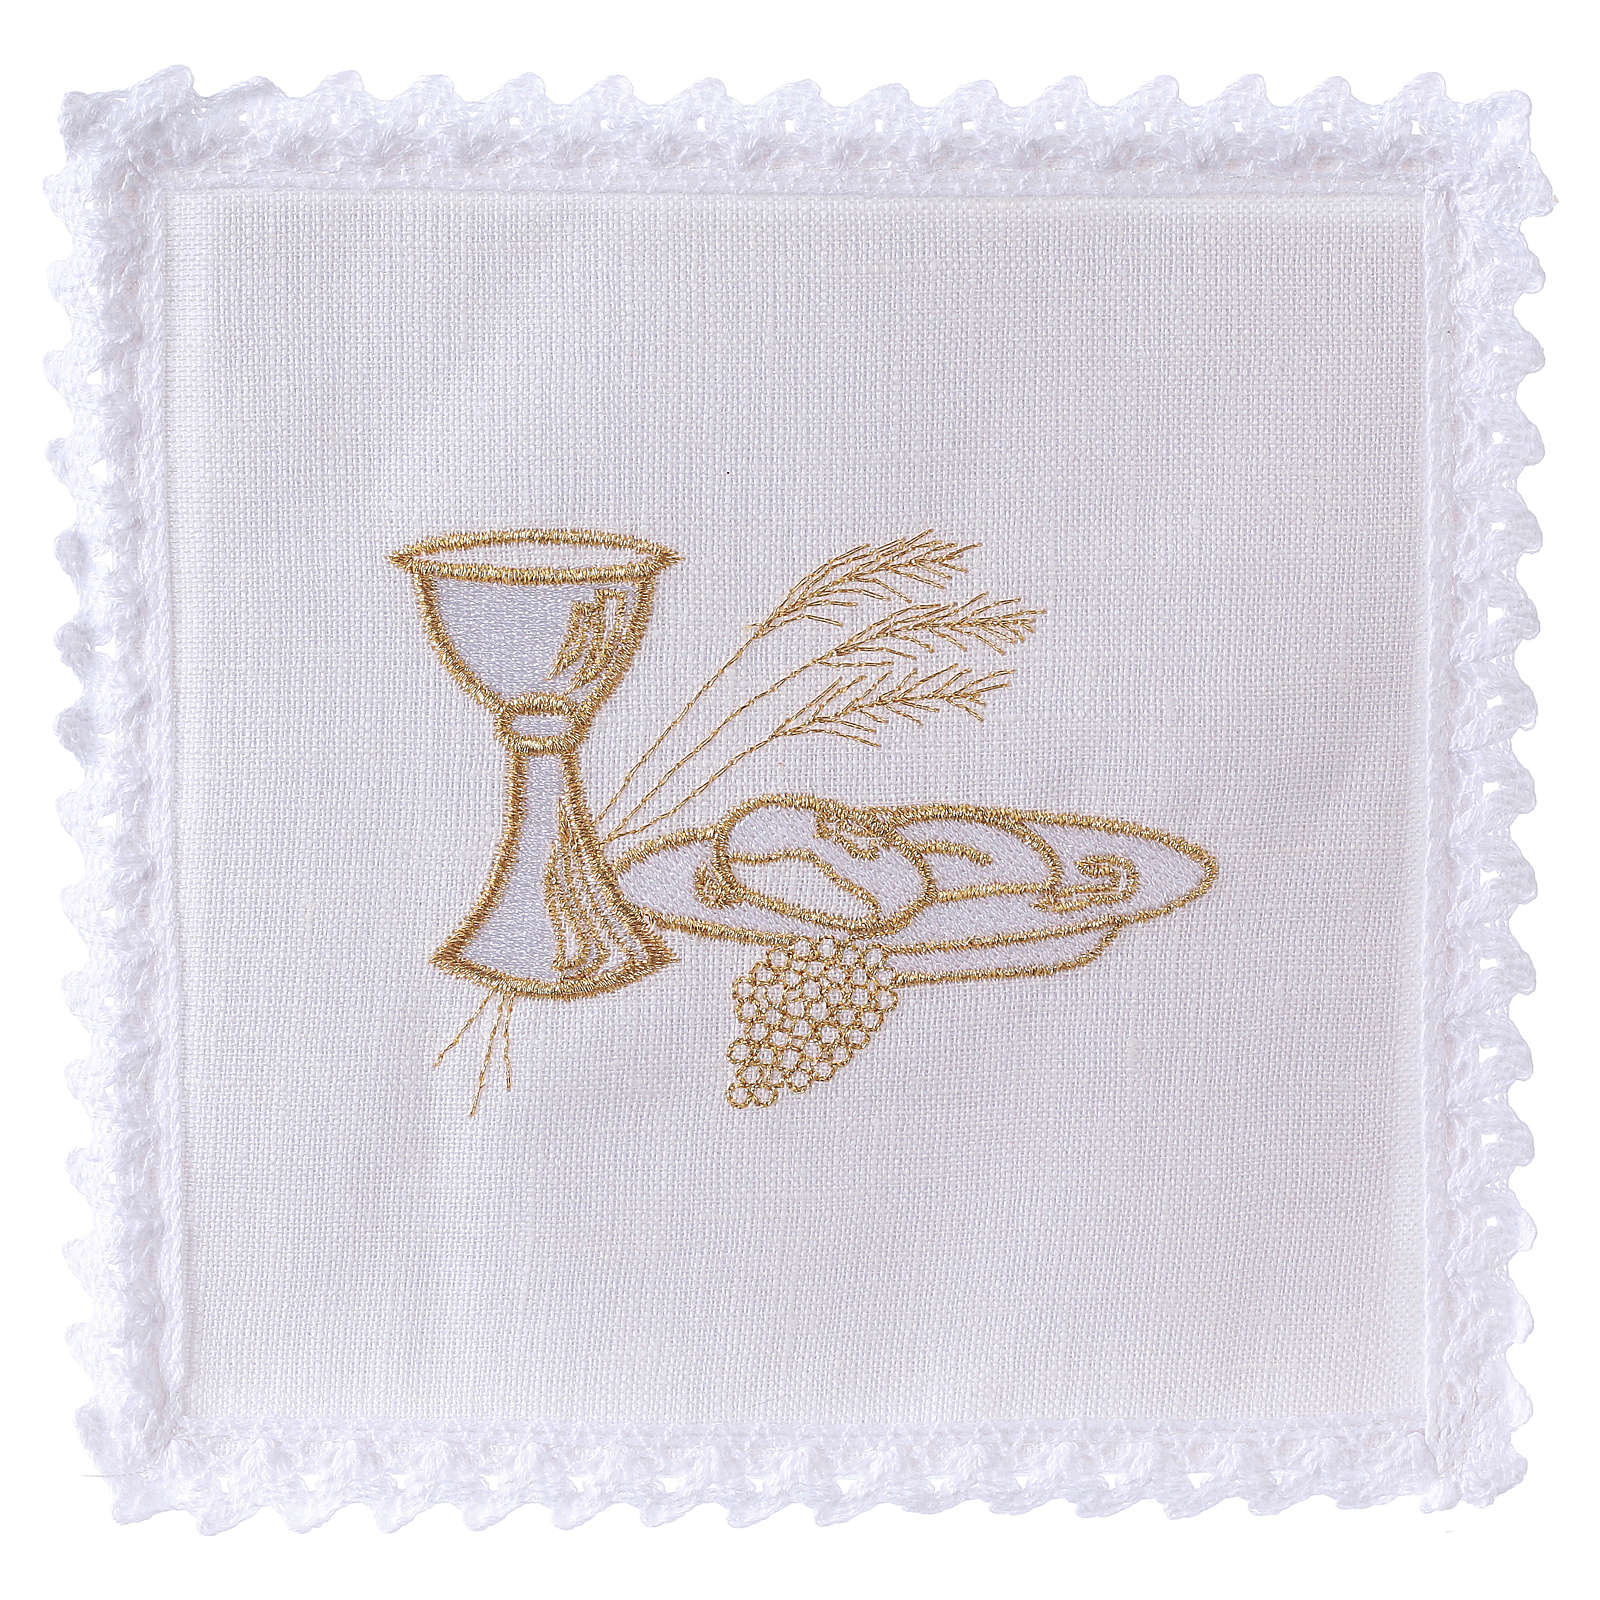 Altar linens set, 100% linen with chalice, loaf and wheat symbols 4